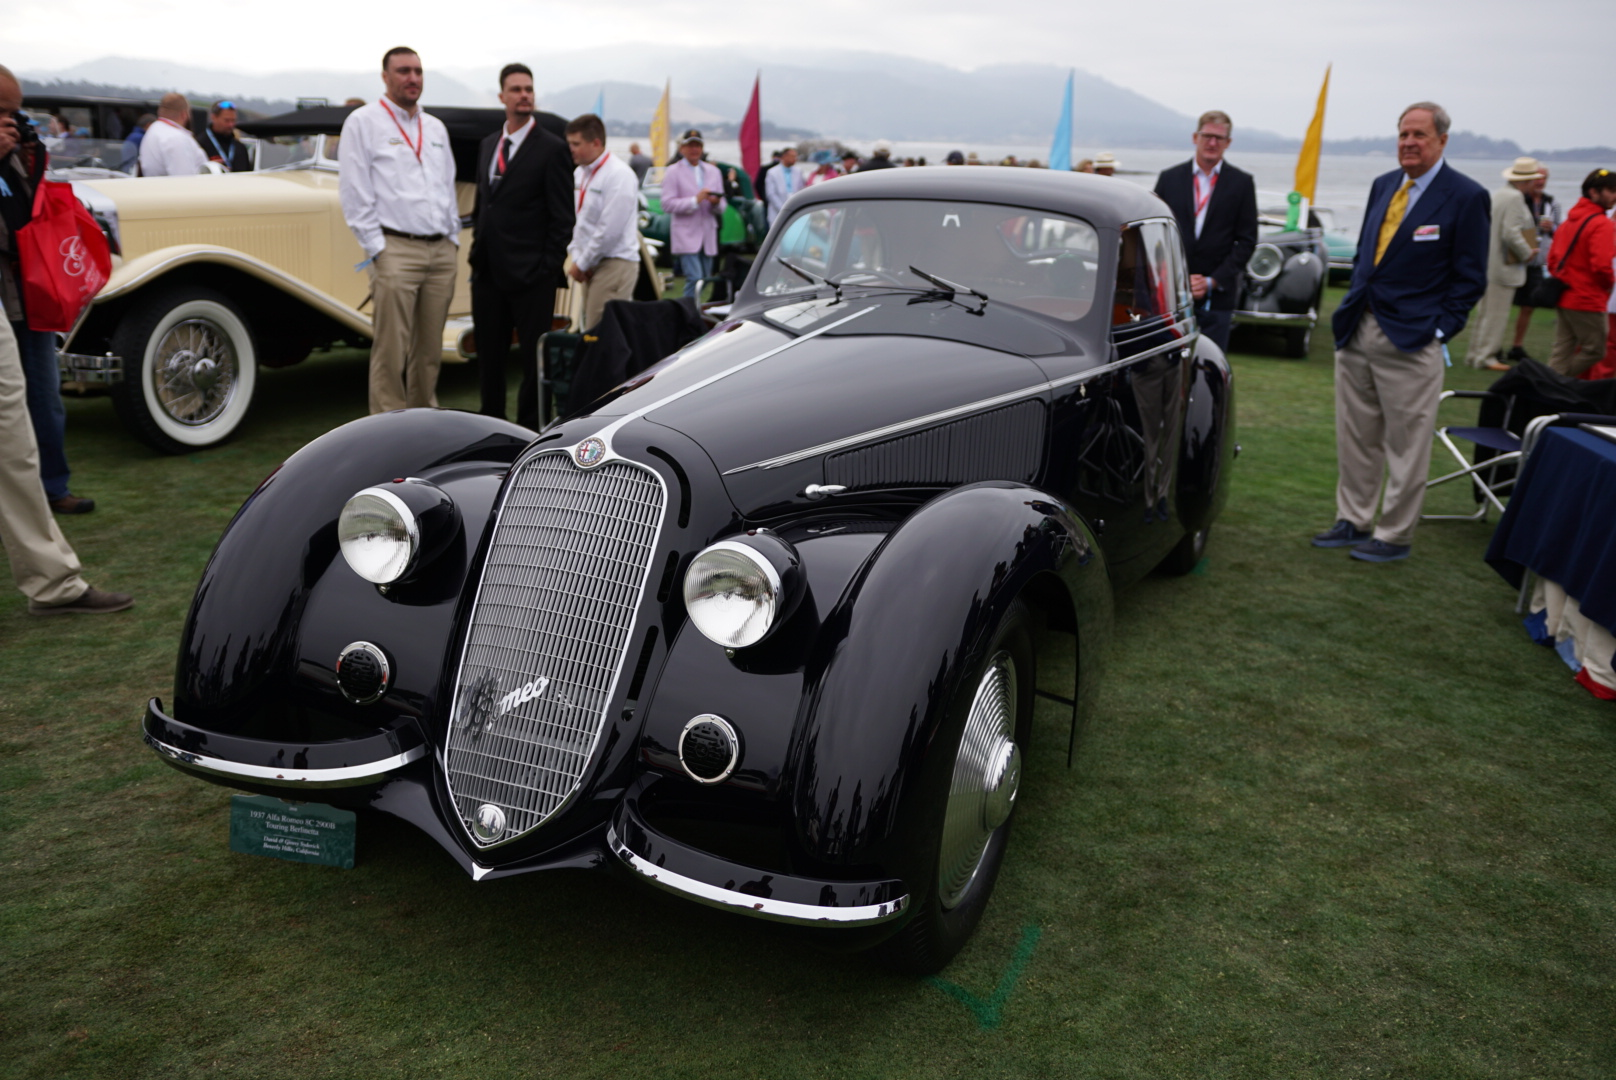 Alfa Romeo 8C 2900 | Best of Show | Pebble Beach Concours d'elegance Winner | Photo: Rebecca Nguyen